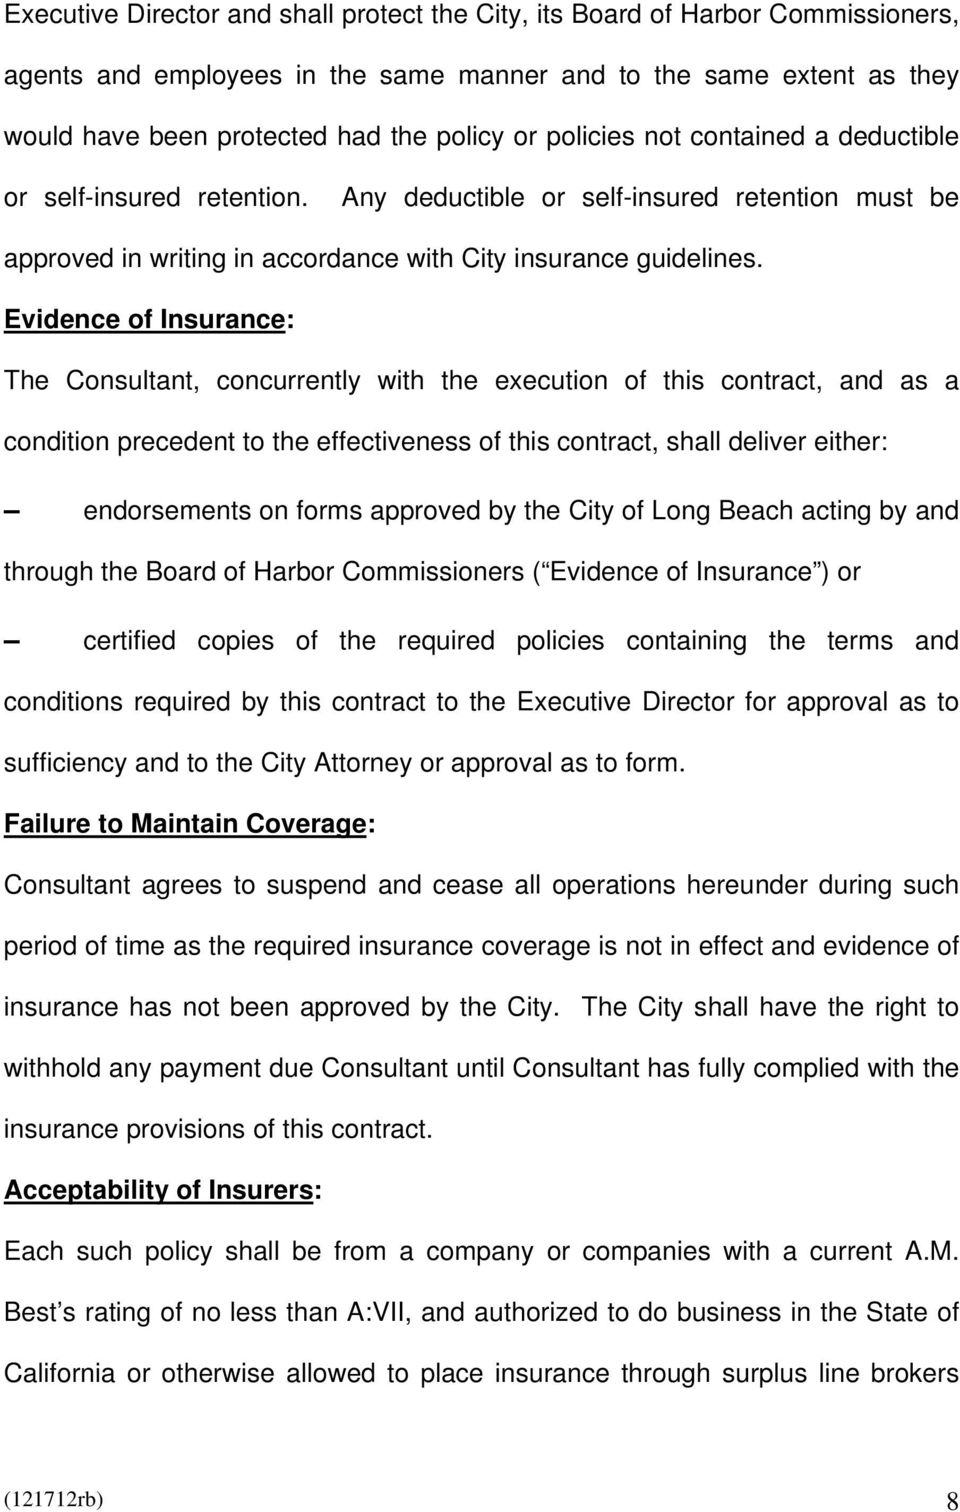 Evidence of Insurance: The Consultant, concurrently with the execution of this contract, and as a condition precedent to the effectiveness of this contract, shall deliver either: endorsements on